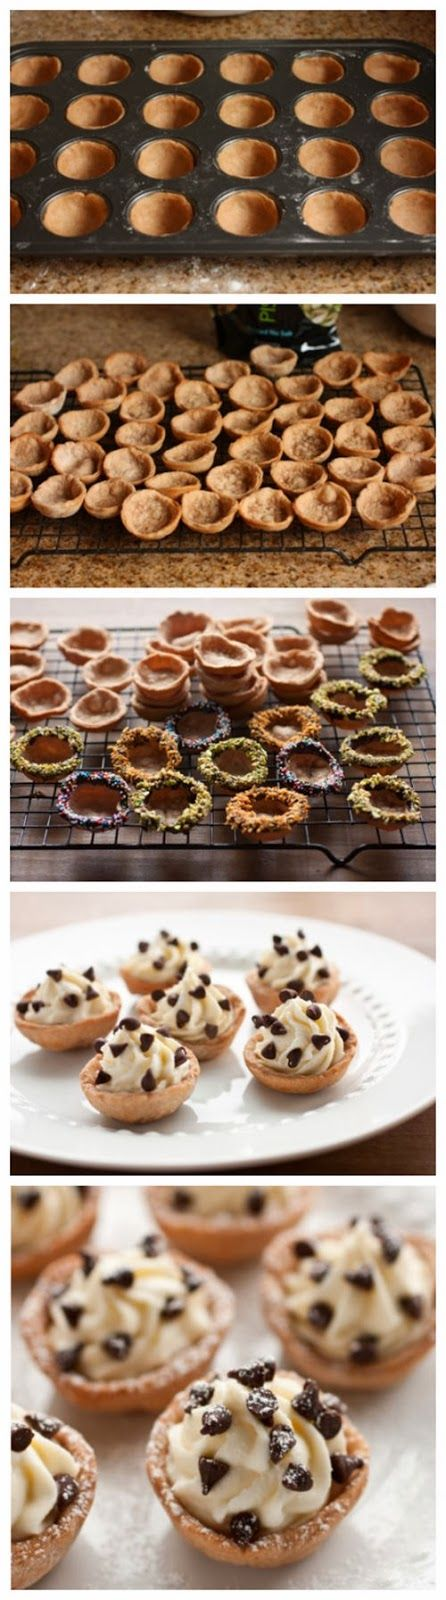 Cannoli Bites Ingredients: Cannoli cups: 2 cups all-purpose flour, plus more for dusting work surface 2 1/2 Tbsp granulated sugar 1 tsp cocoa powder 1/2 tsp cinnamon 1 pinch nutmeg (optional) 1/2 t...